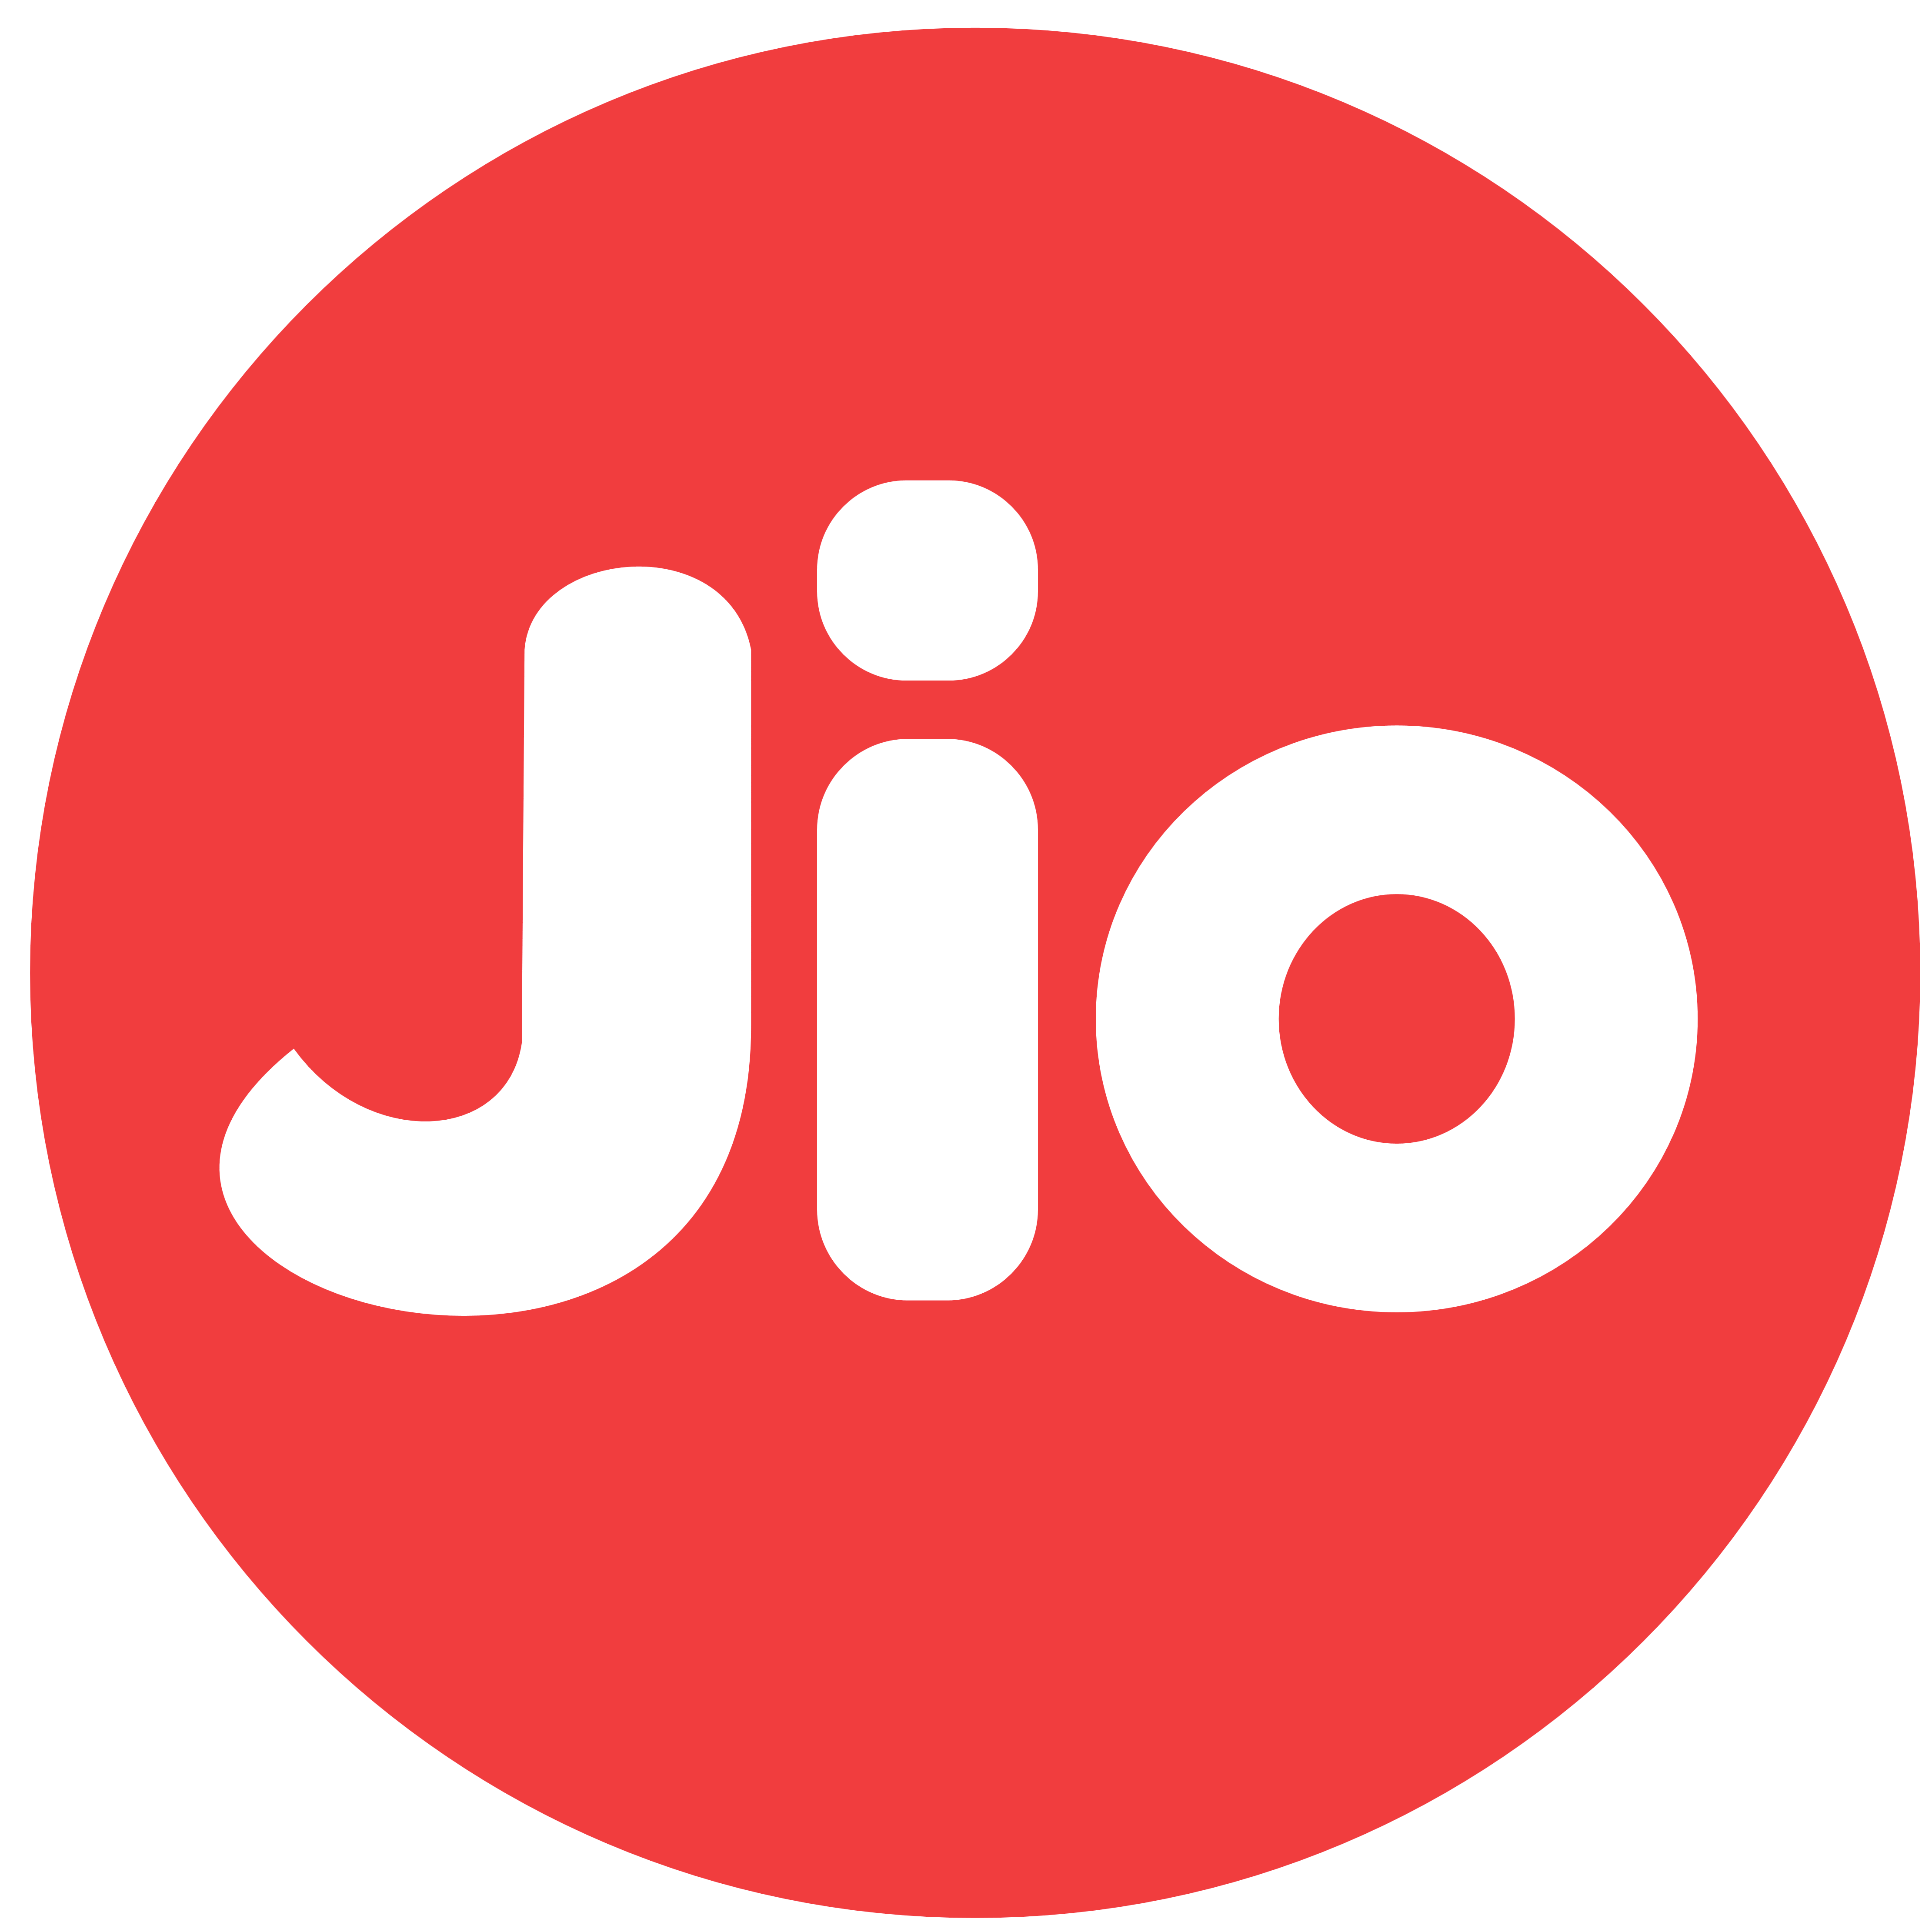 Jio Phone 3 Wallpaper Download Hd